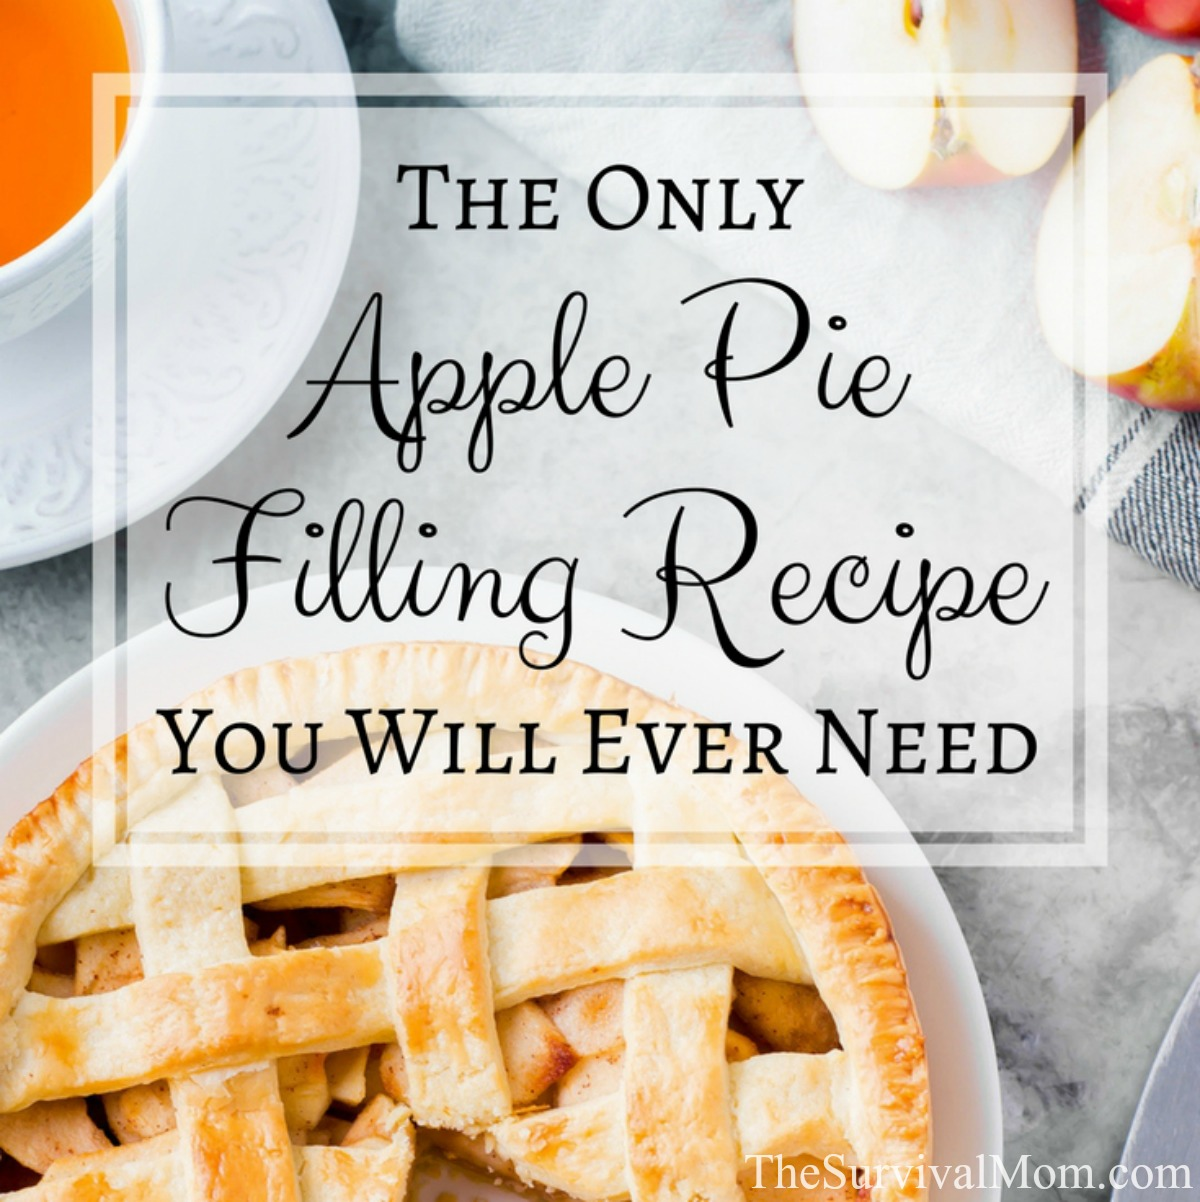 The Only Apple Pie Filling You Will Ever Need via The Survival Mom